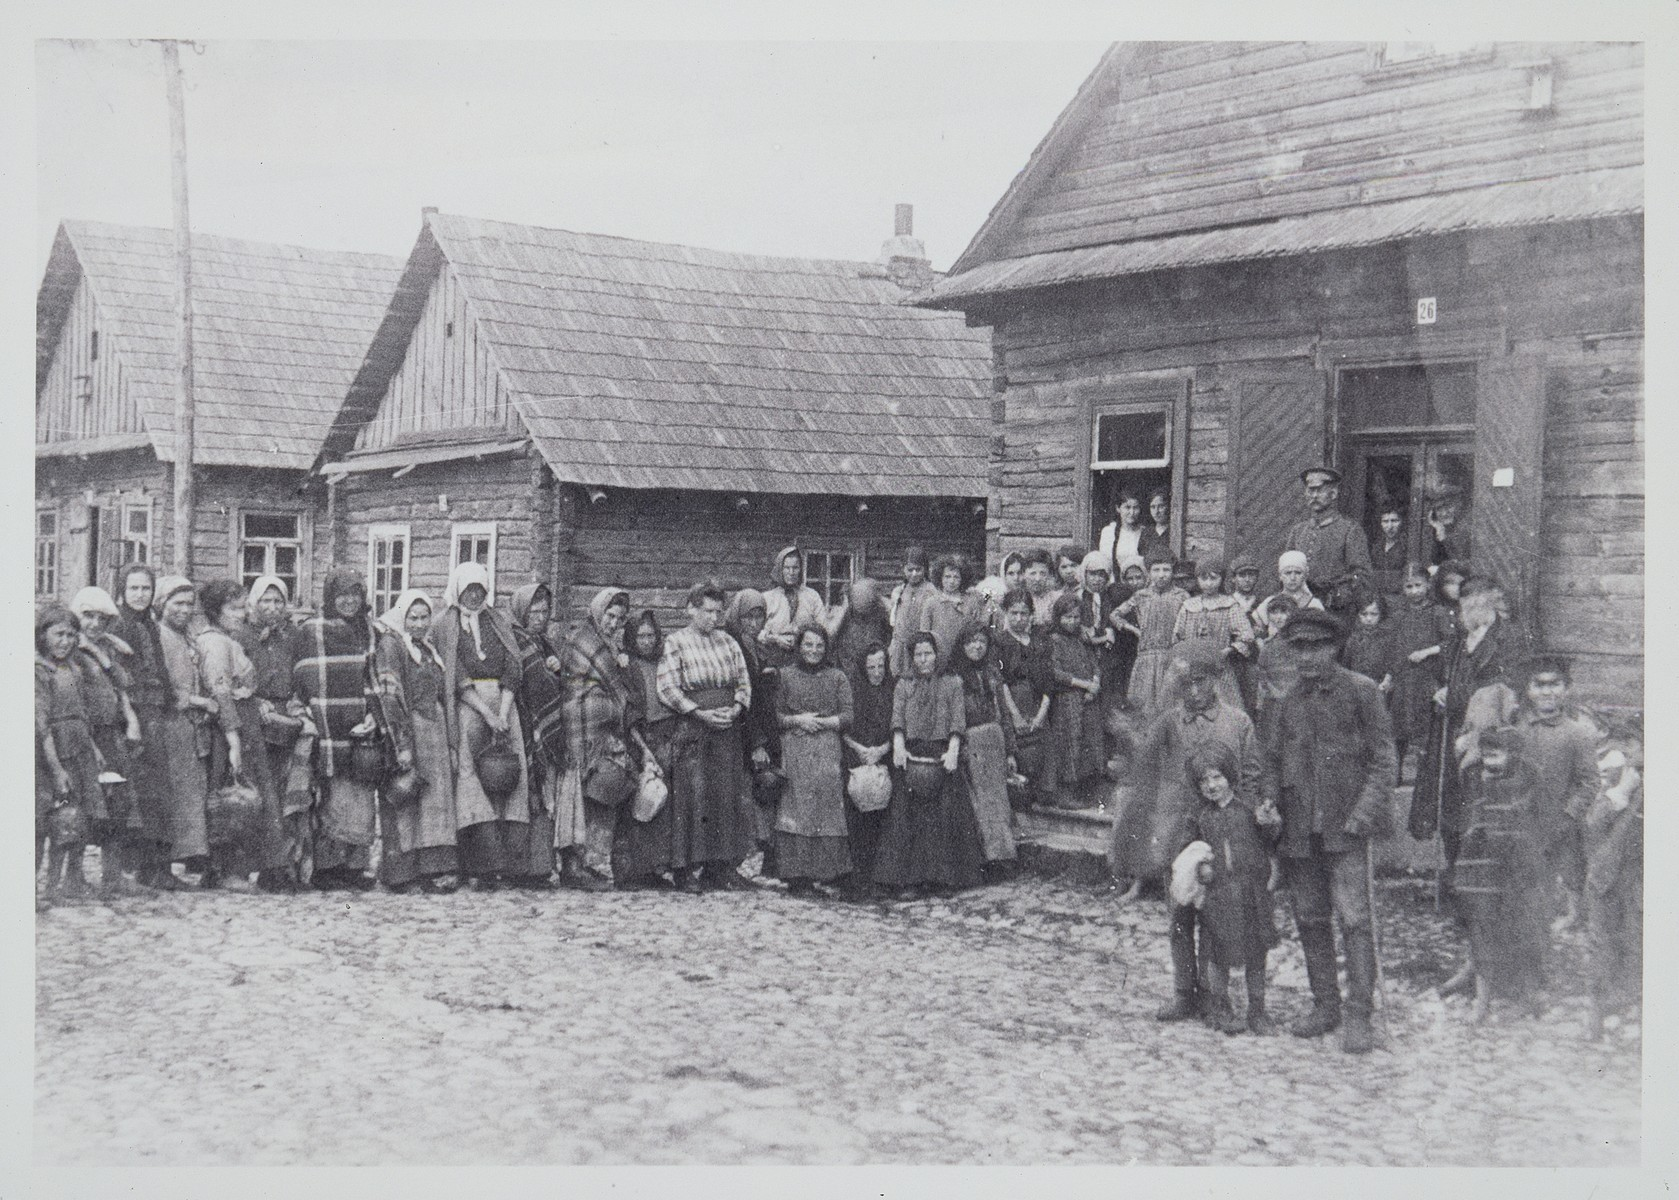 Jews and non-Jews await food distribution in front of the soup kitchen.   German soldiers helped to distribute the food.  The building that housed the soup kitchen belonged to Leib der Grober (the fat one), who immigrated to the United States. The middle house belonged to Avraham-Asher, and the third house to Hayyim Leibke Paikowski.